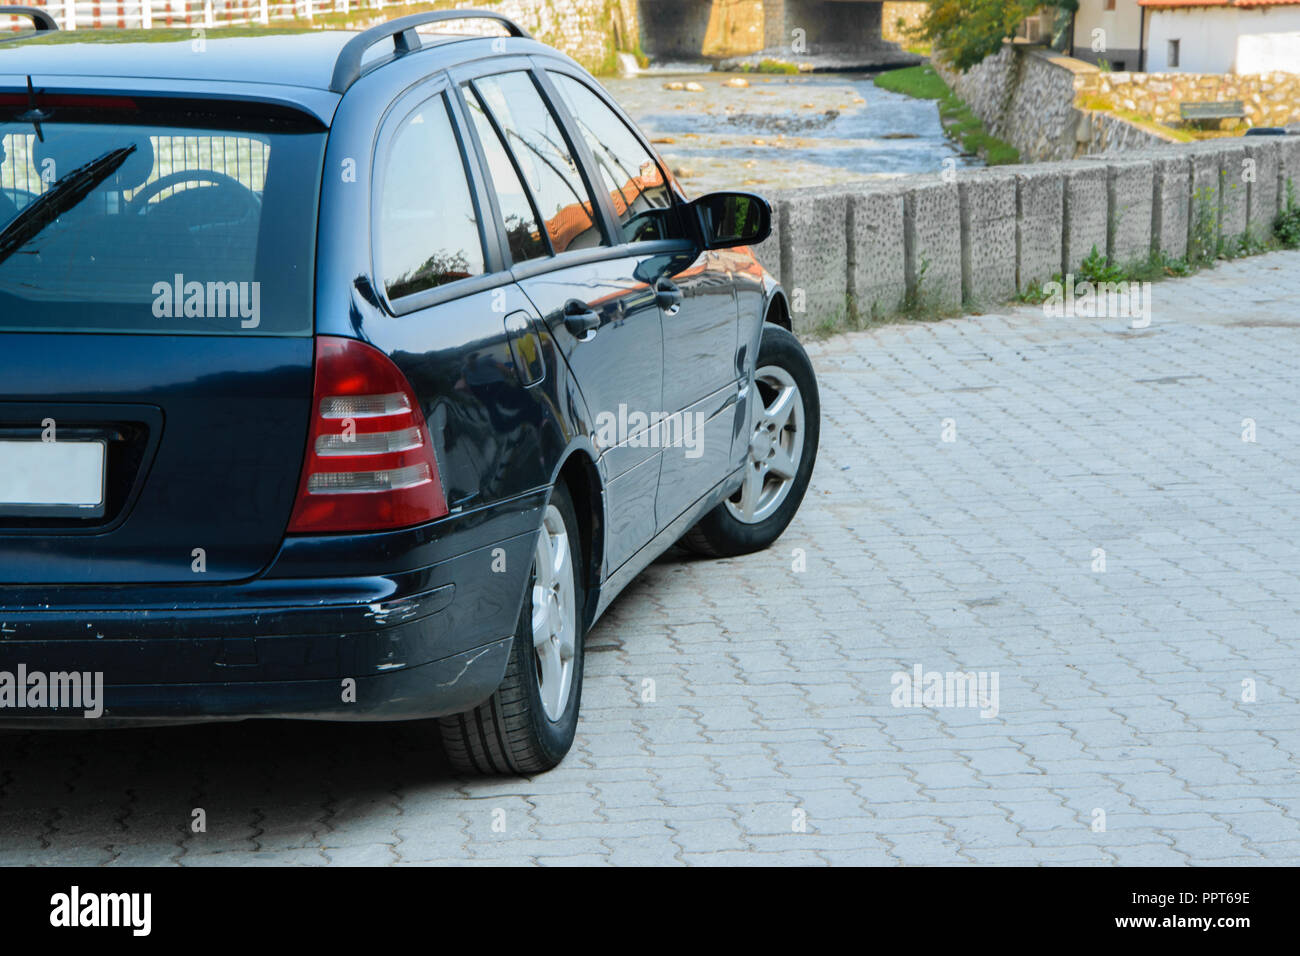 Family car parked a few centimeters from the wall of the river bridge, copy space. Concepts - accident, dangerous driving, insurance - Stock Image